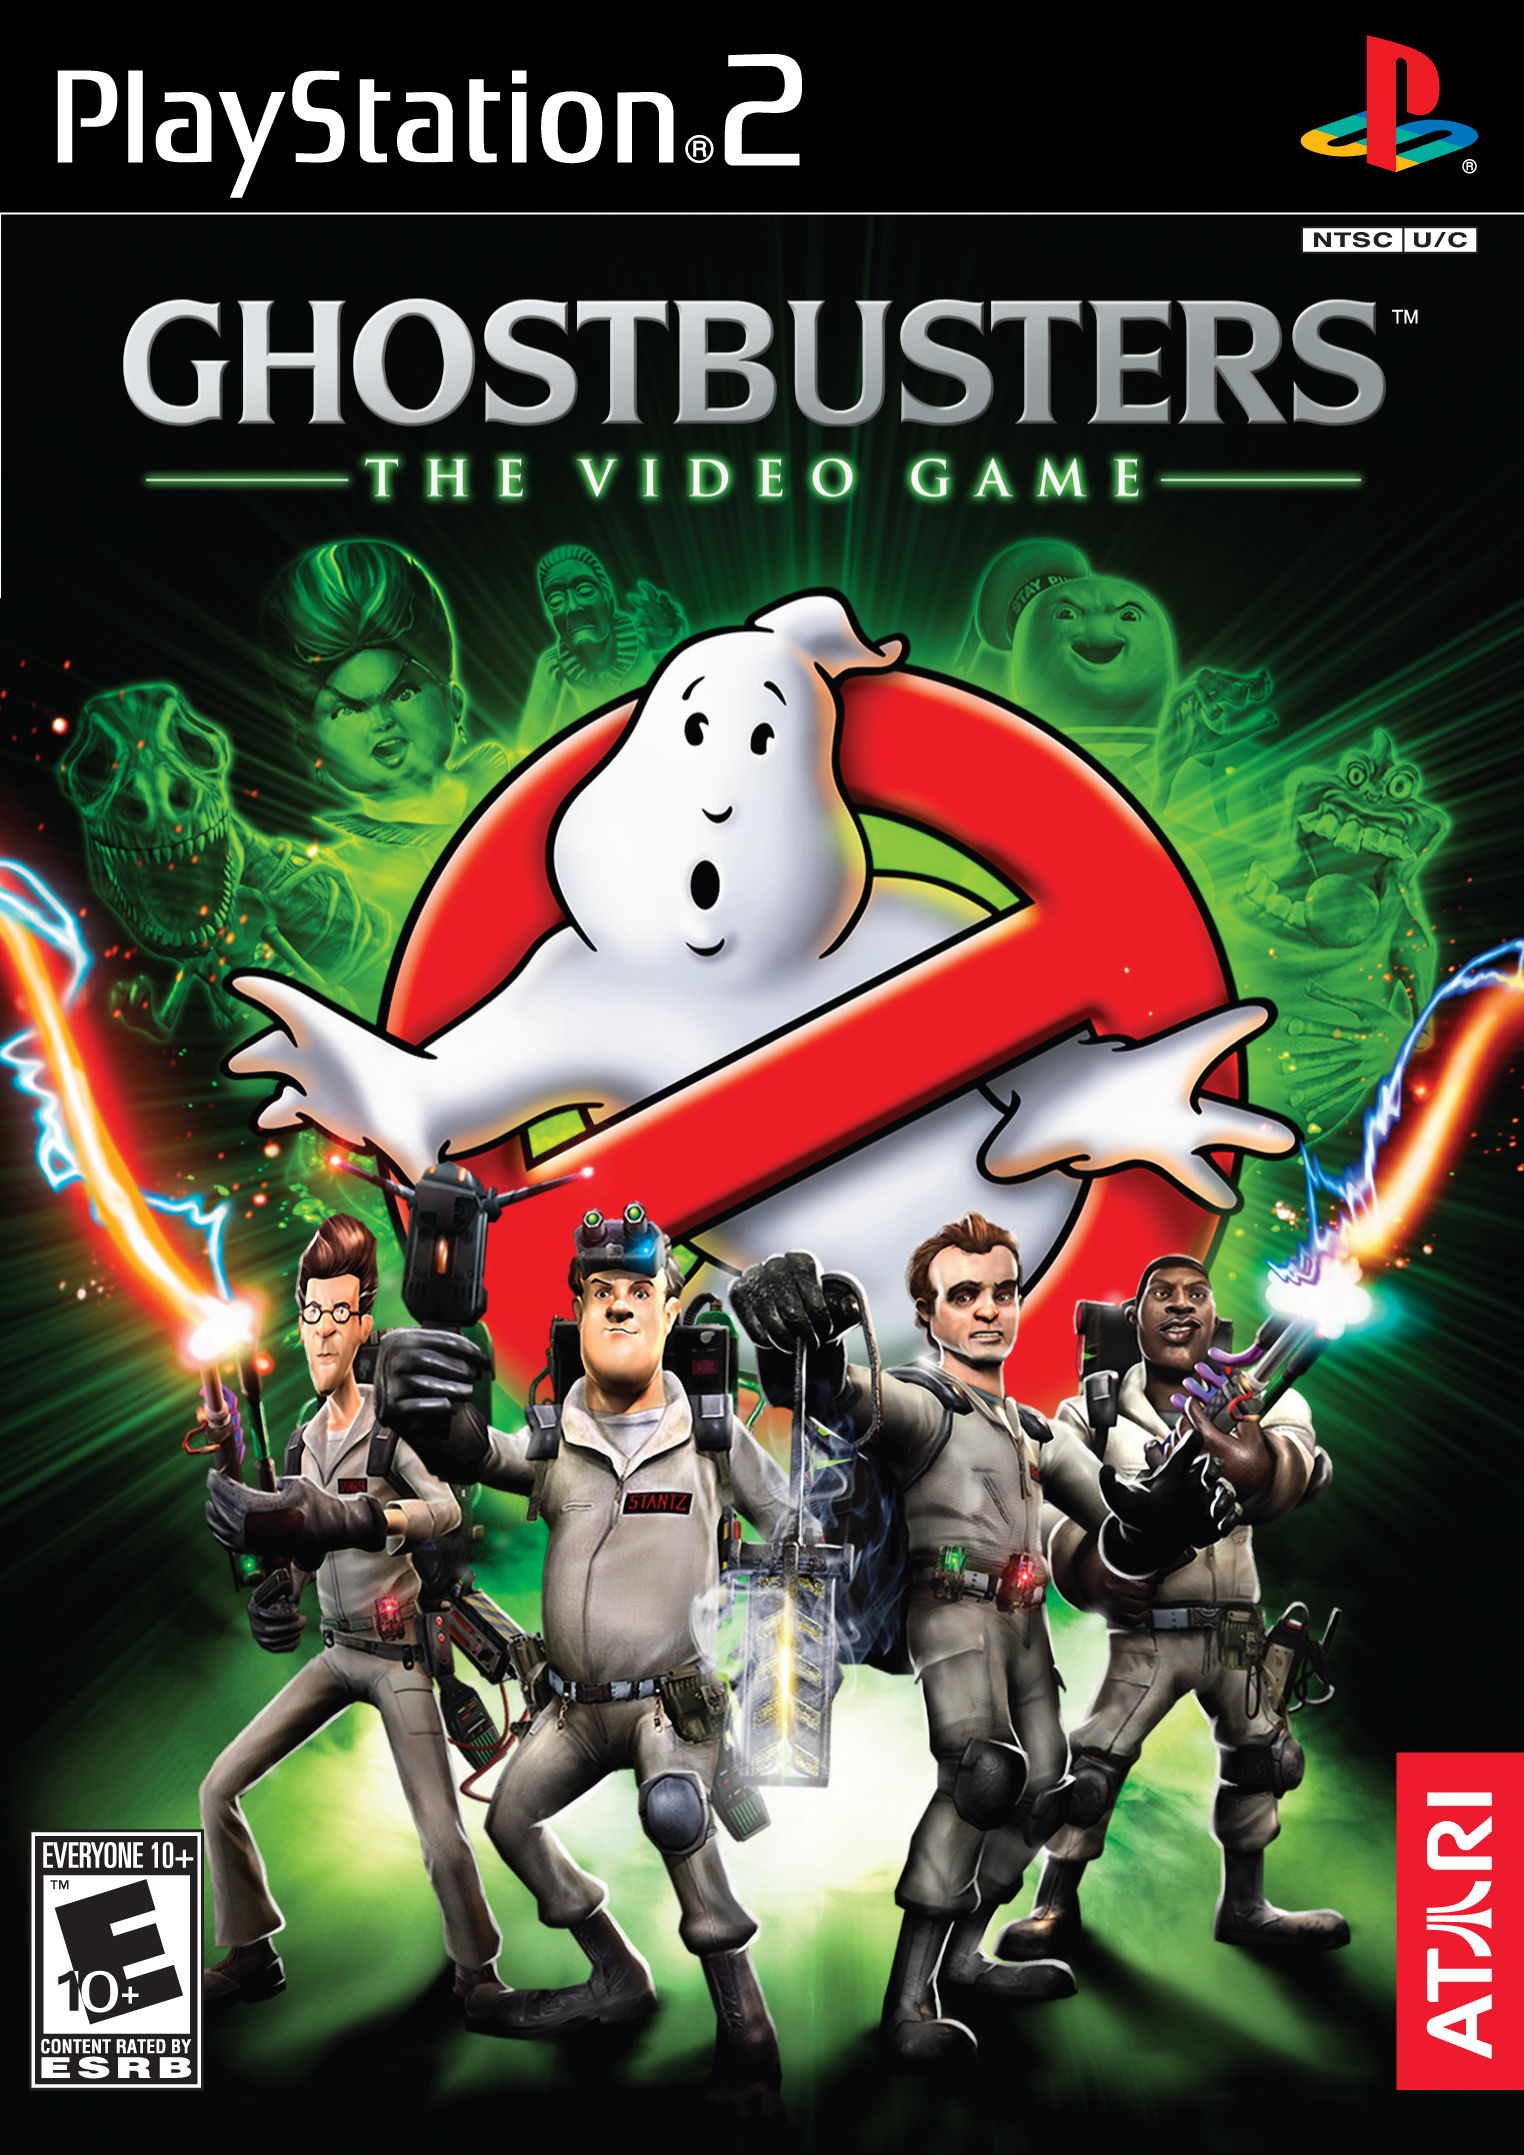 Ghostbusters  The Video Game  PS2  - Ghostbusters Wiki -  quot The    Ghostbusters